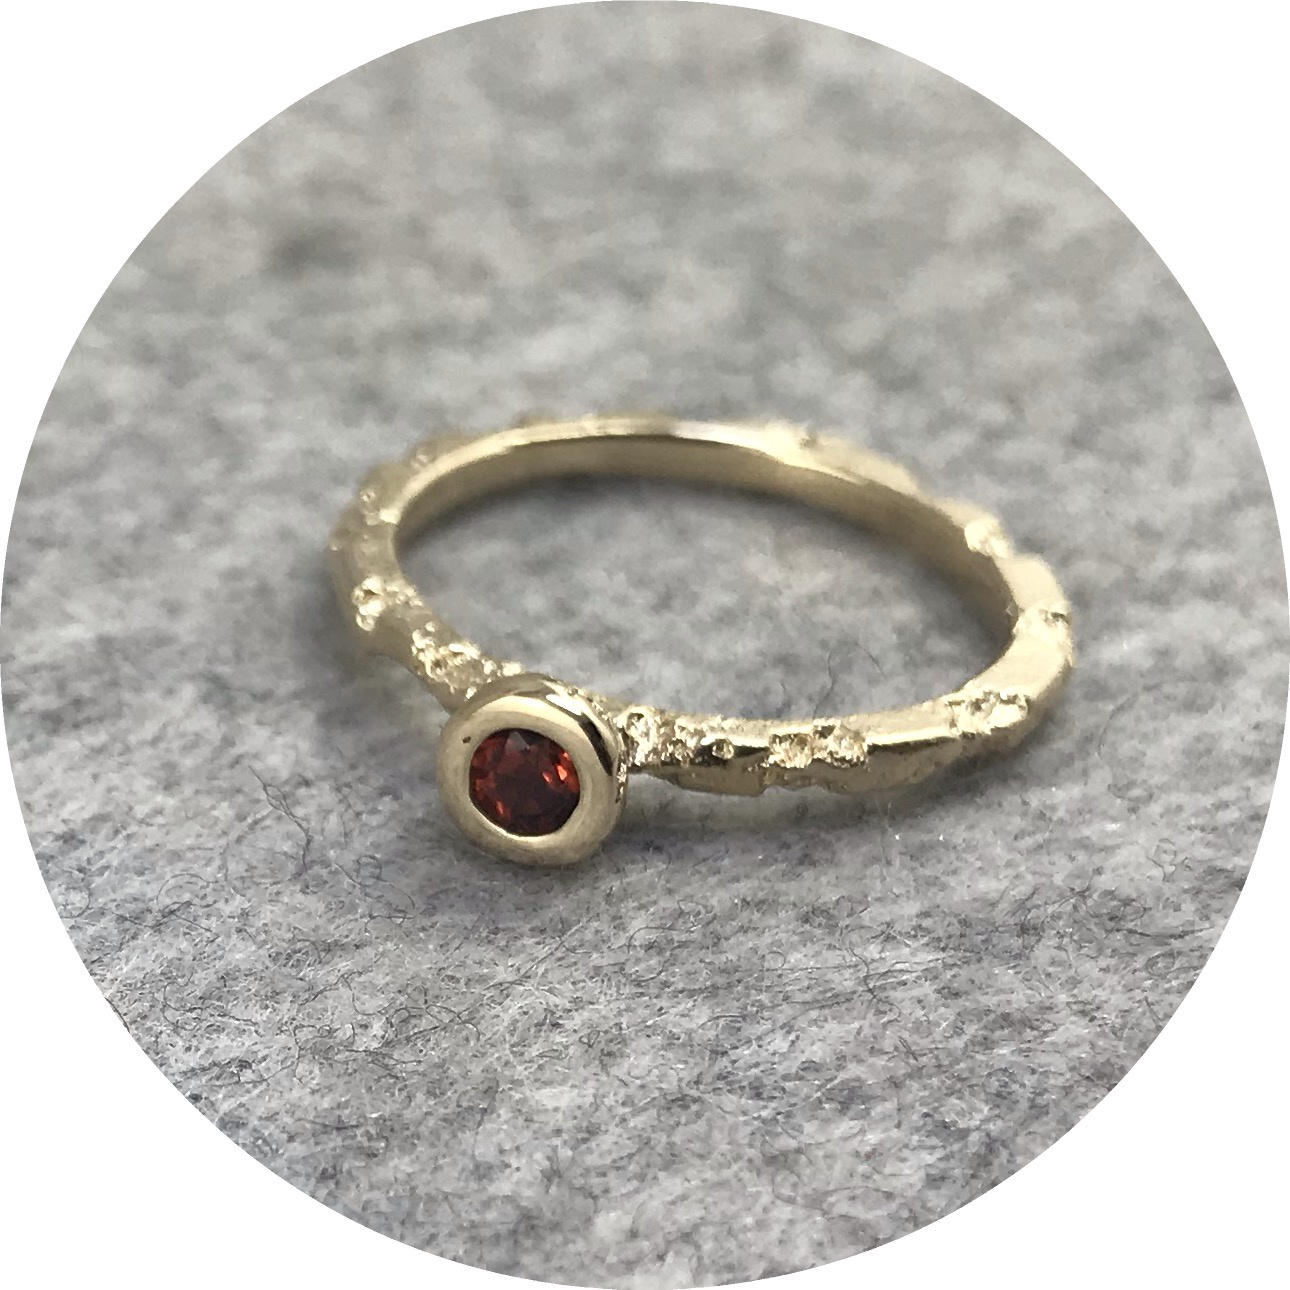 Albert Tse - Crater 1.5mm 9ct Yellow Gold Ring with a 3mm Red Garnet